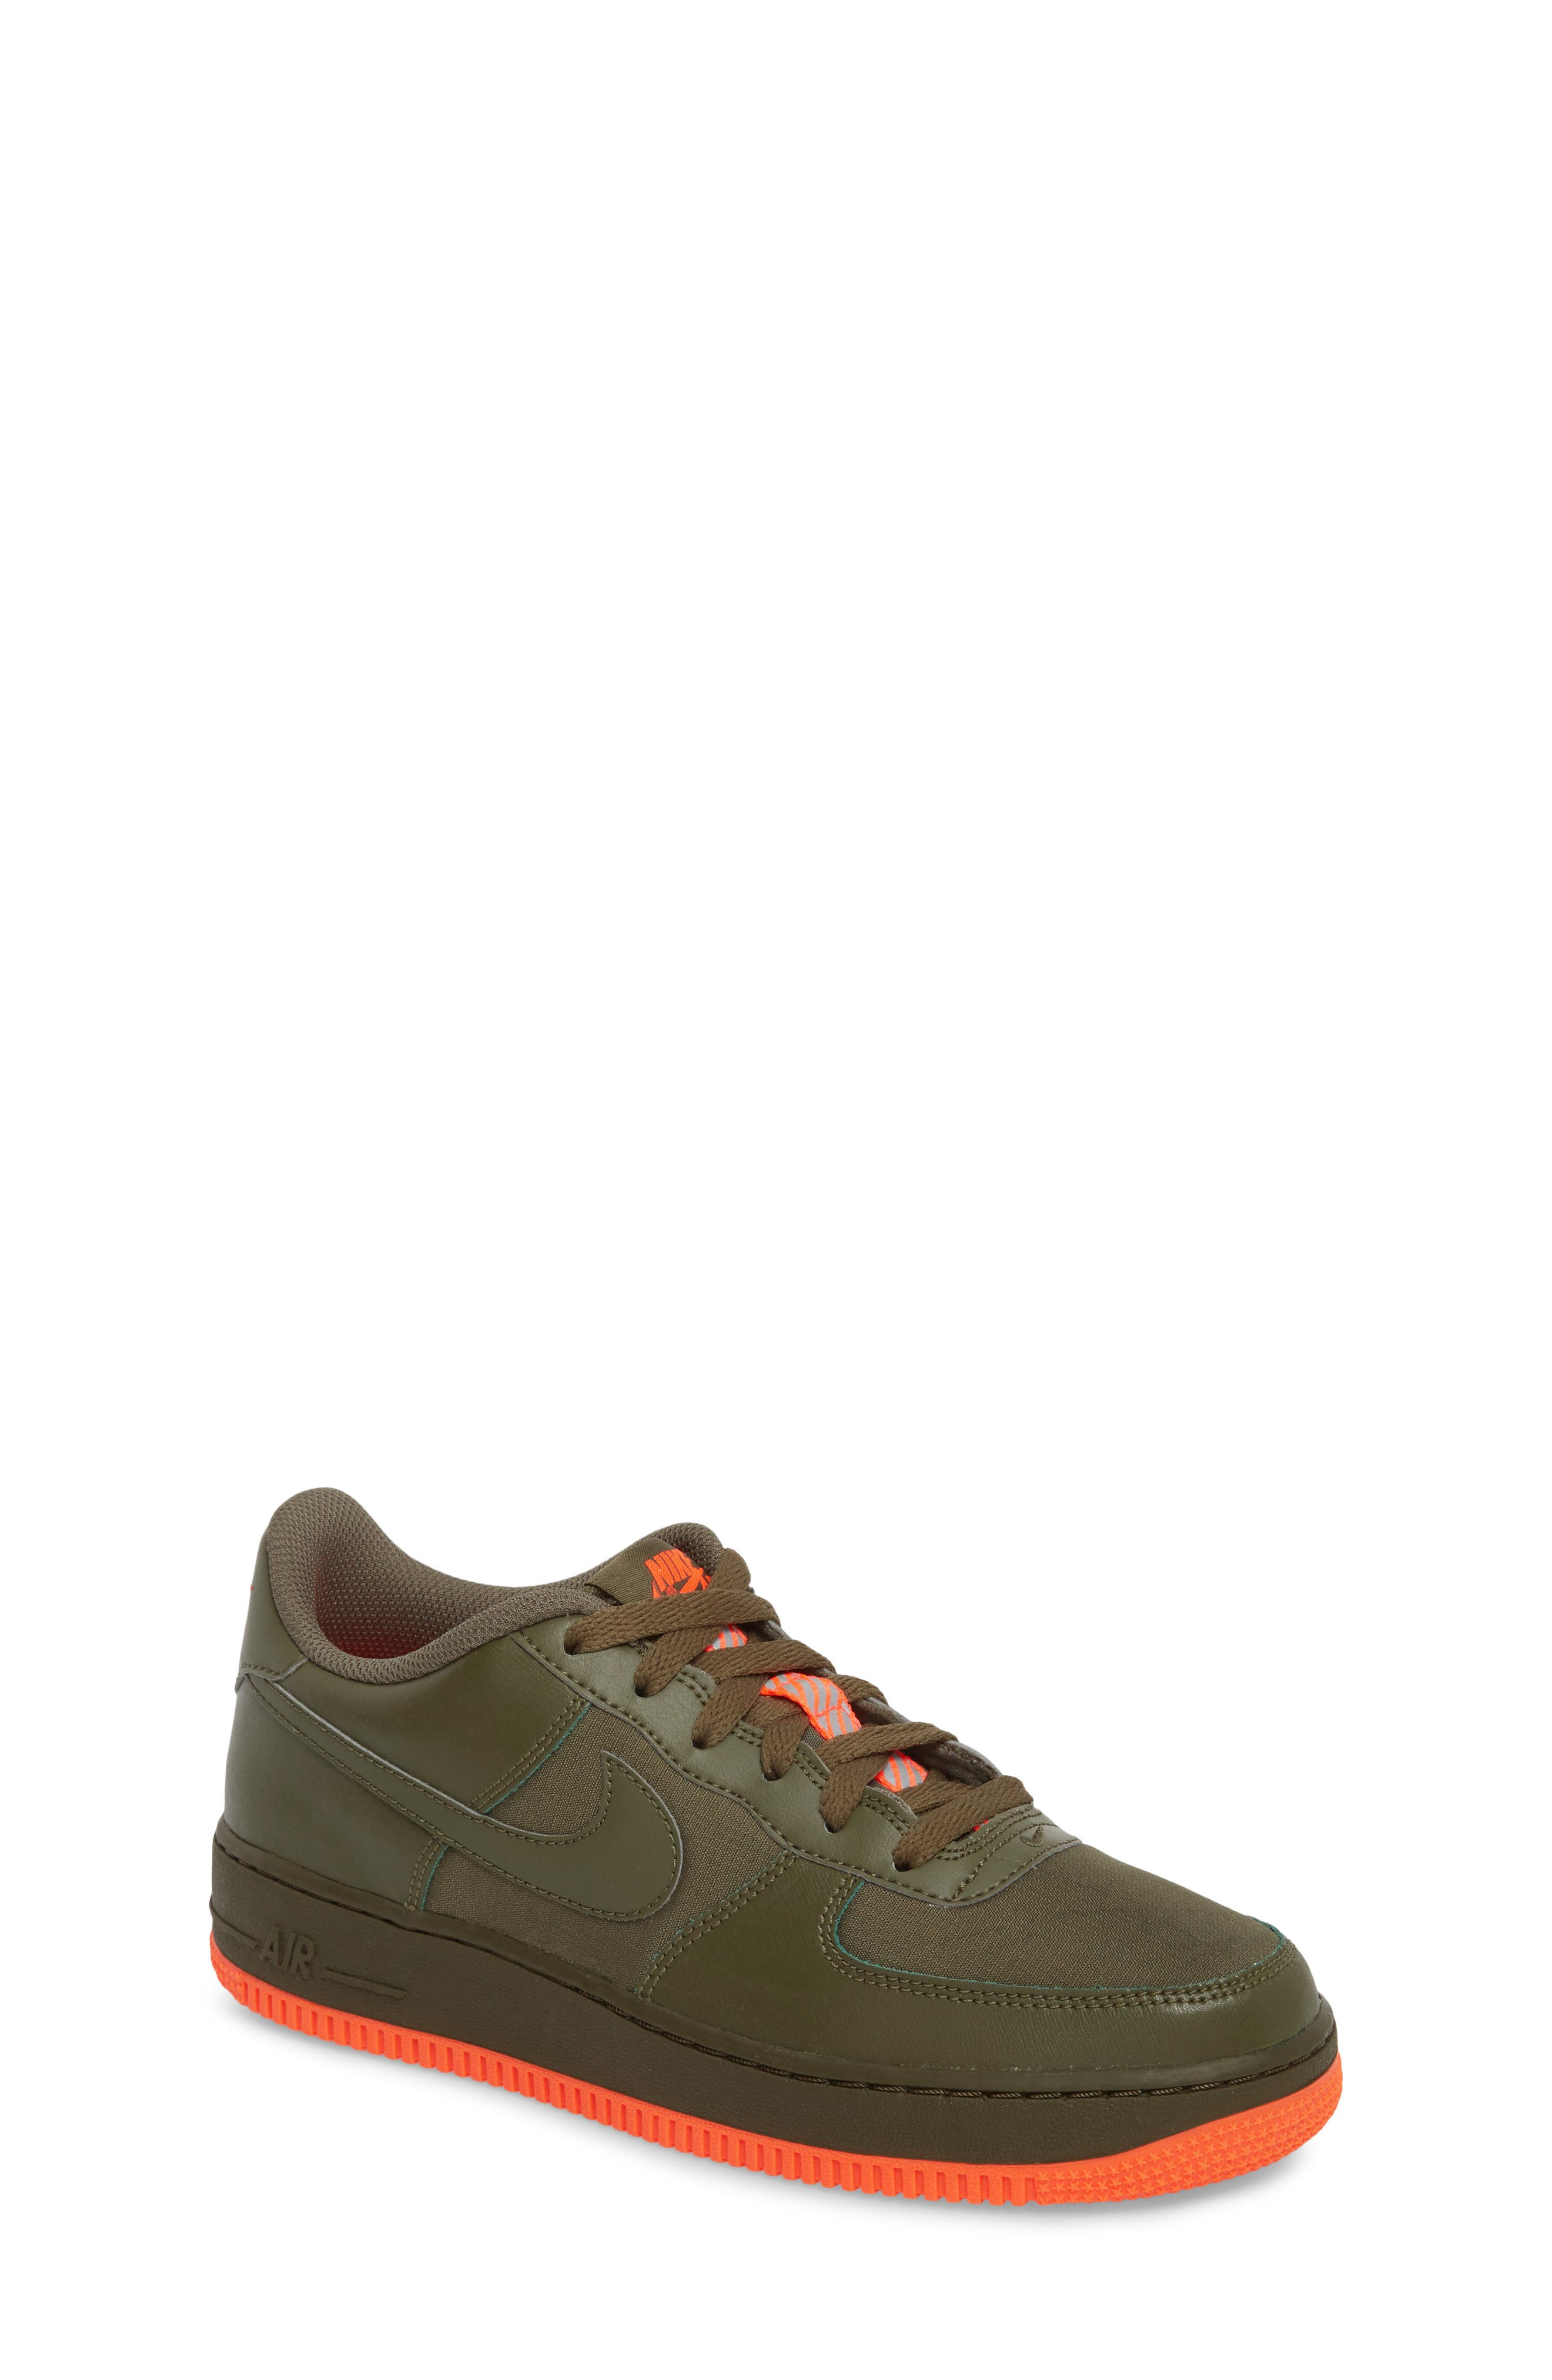 Air Force 1 LV8 Sneaker,                             Main thumbnail 1, color,                             MEDIUM OLIVE/ TOTAL CRIMSON